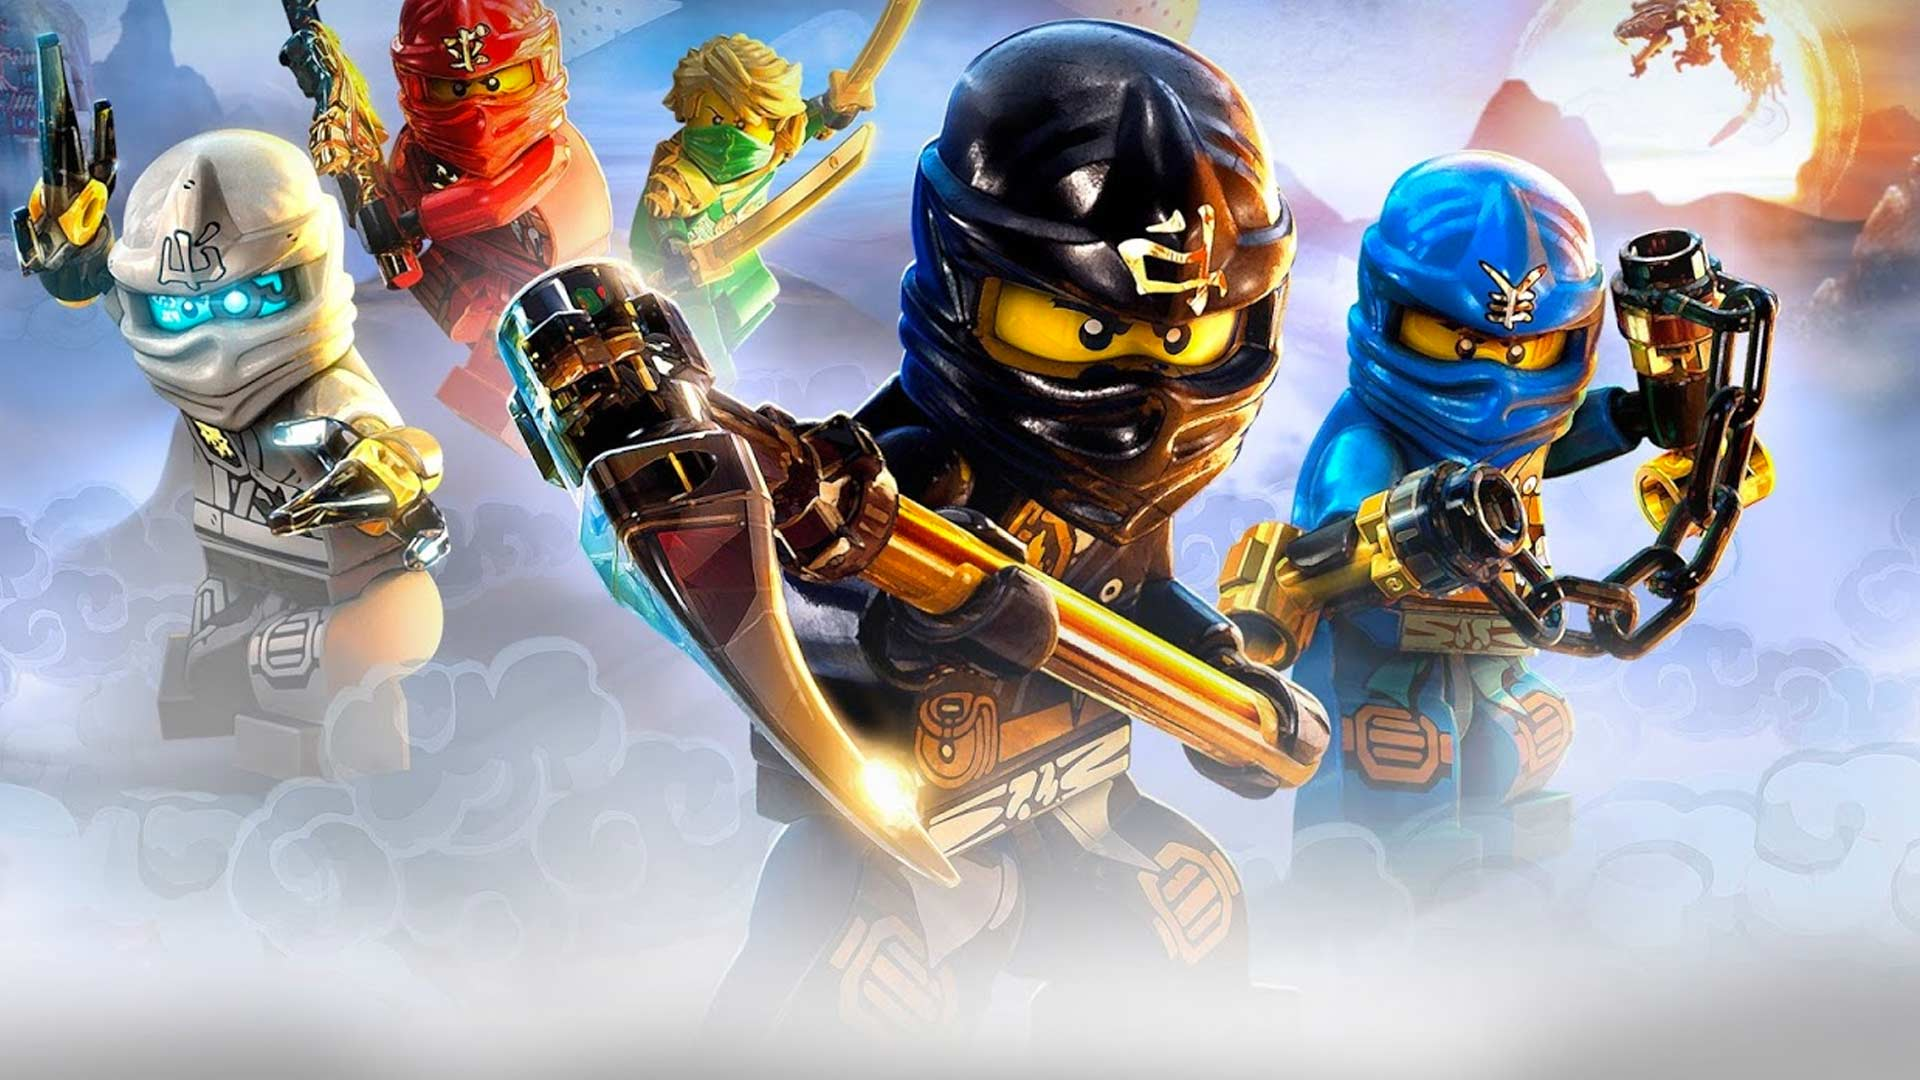 grab this lego ninjago movie toy for half price trusted reviews. Black Bedroom Furniture Sets. Home Design Ideas